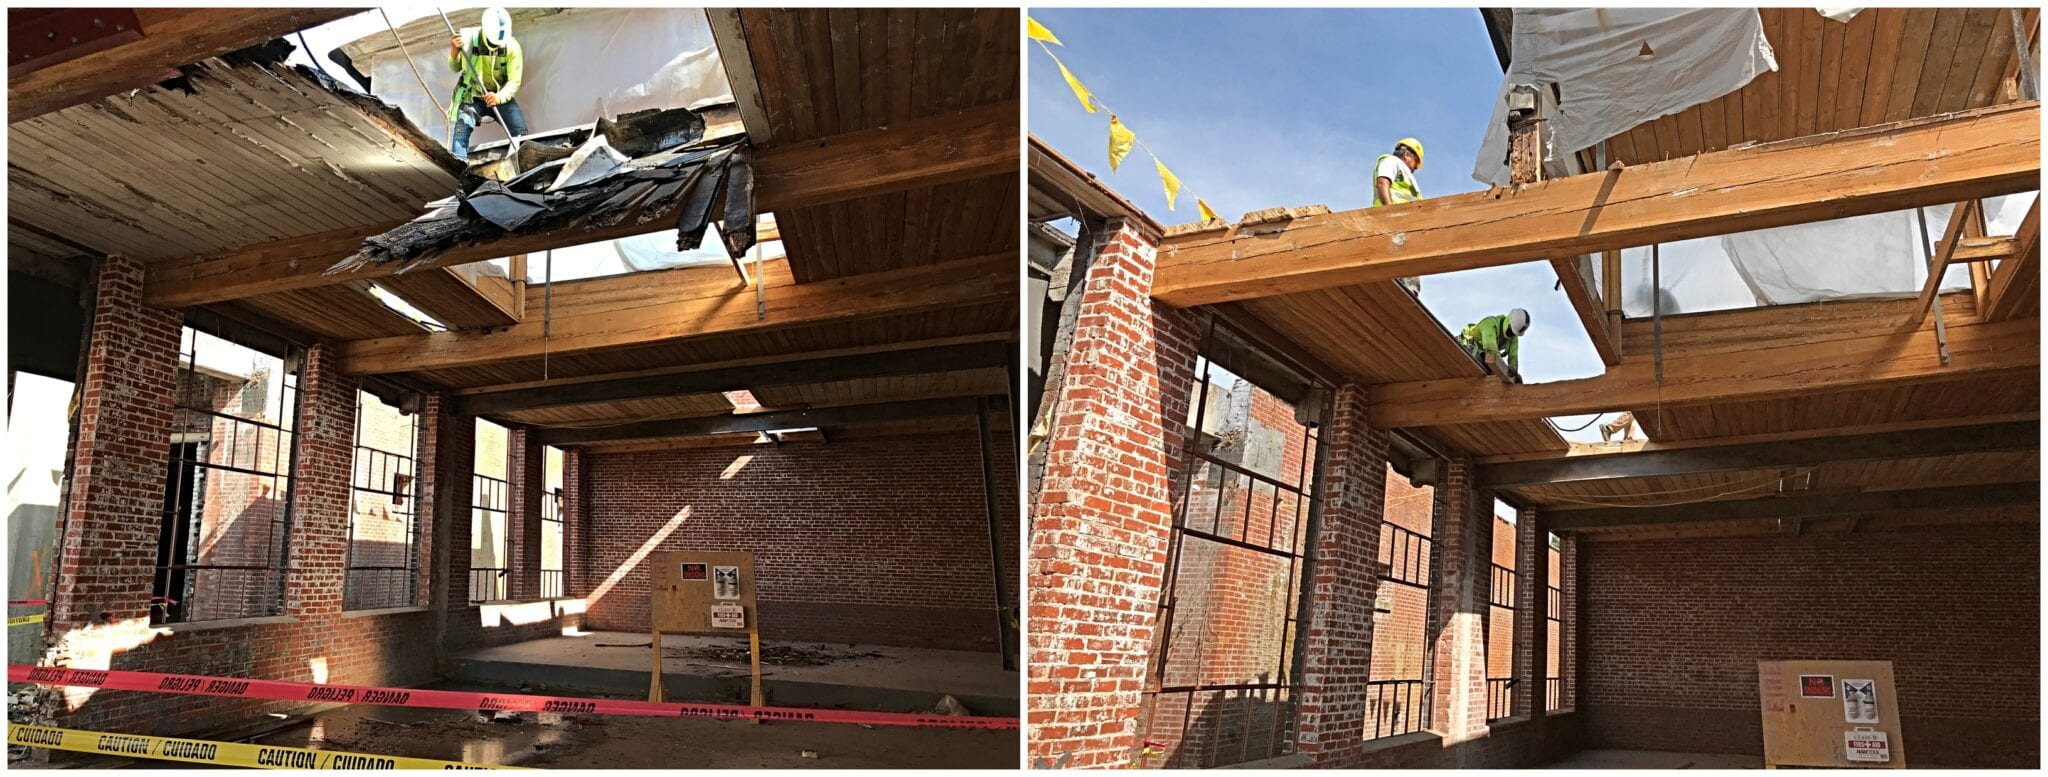 Tongue and groove wood decking roof restoration in downtown Hendersonville North Carolina